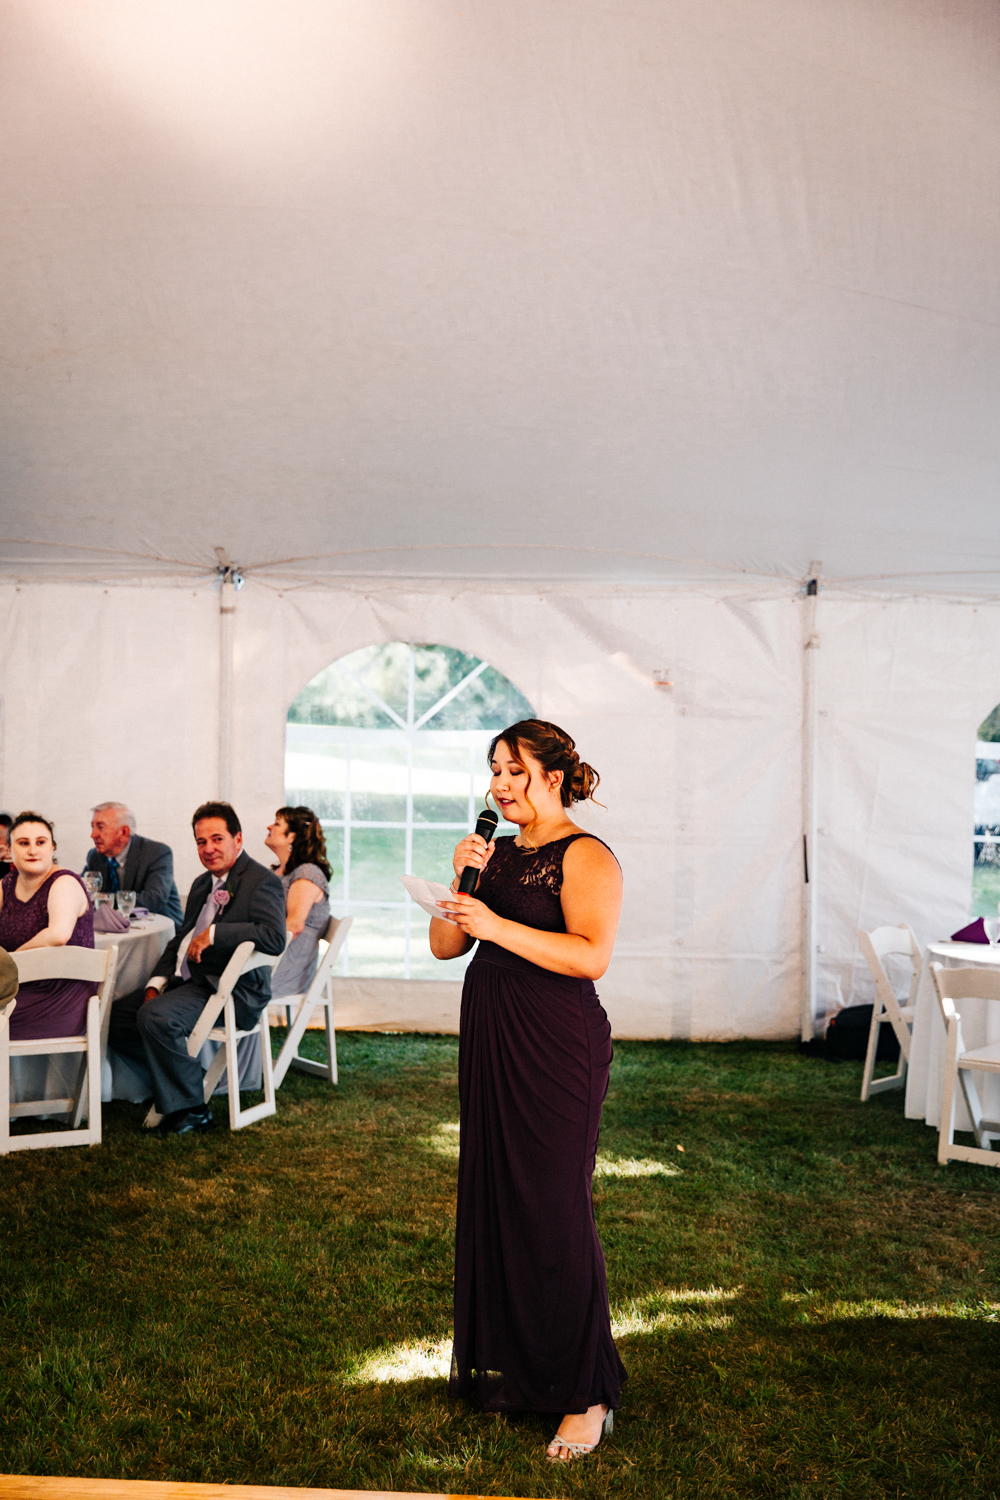 toasts-wedding-bridesmaid-maid-of-honor-gwyn-careg-wedding-pomfret-ct-ma-ri-new-england-photographer.jpg